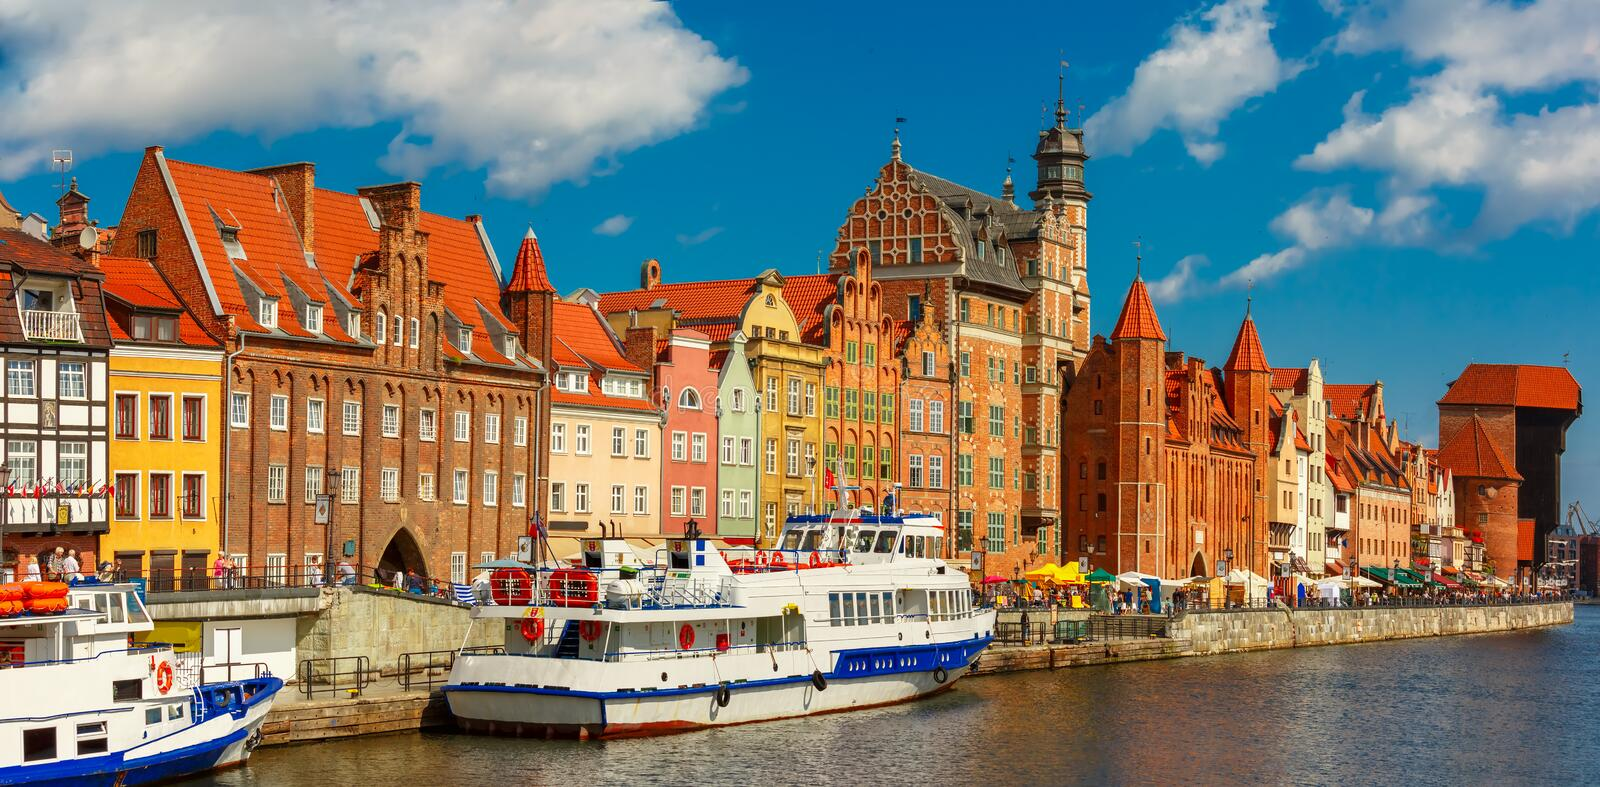 Panorama of Old Town and Motlawa in Gdansk, Poland stock photo